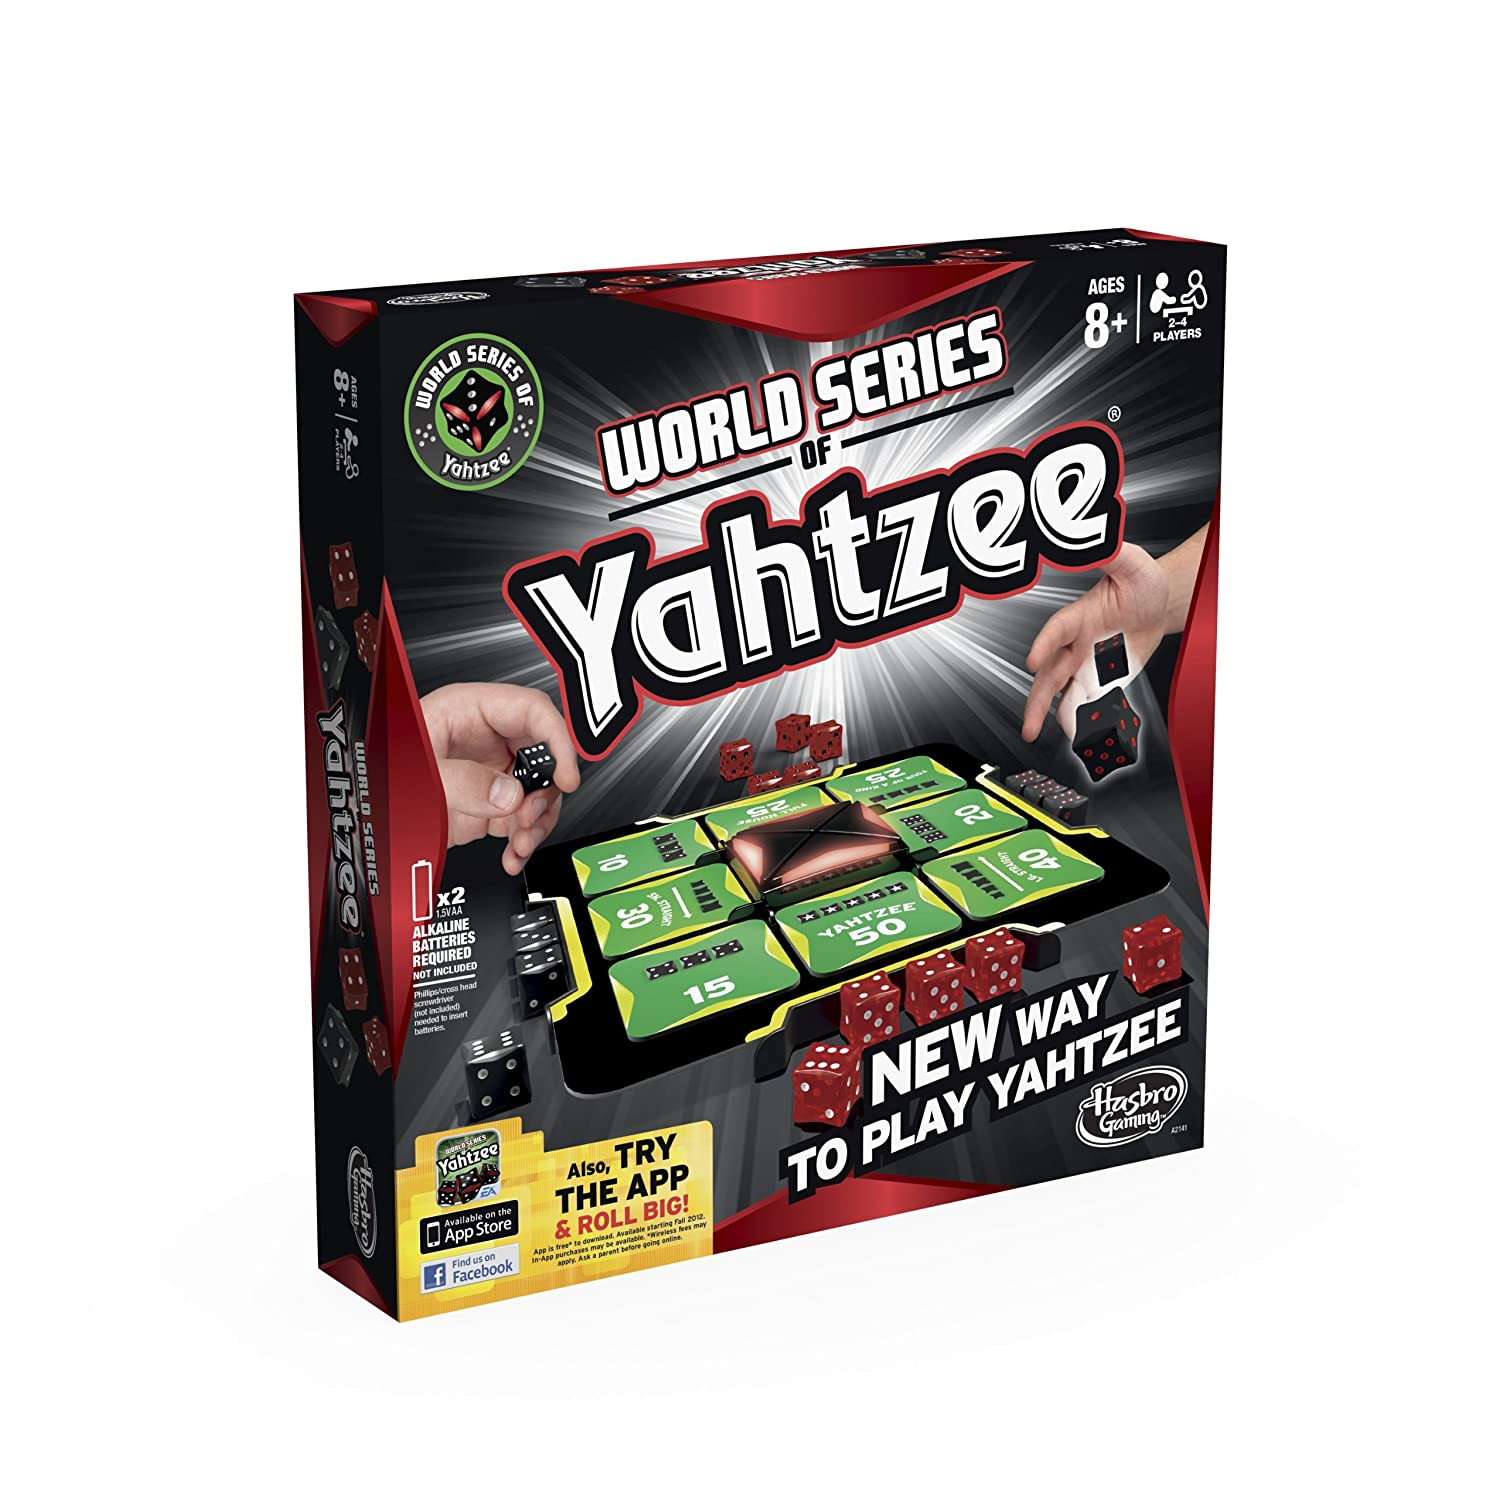 World Series of Yahtzee (Englische Sprache) [UK Import]